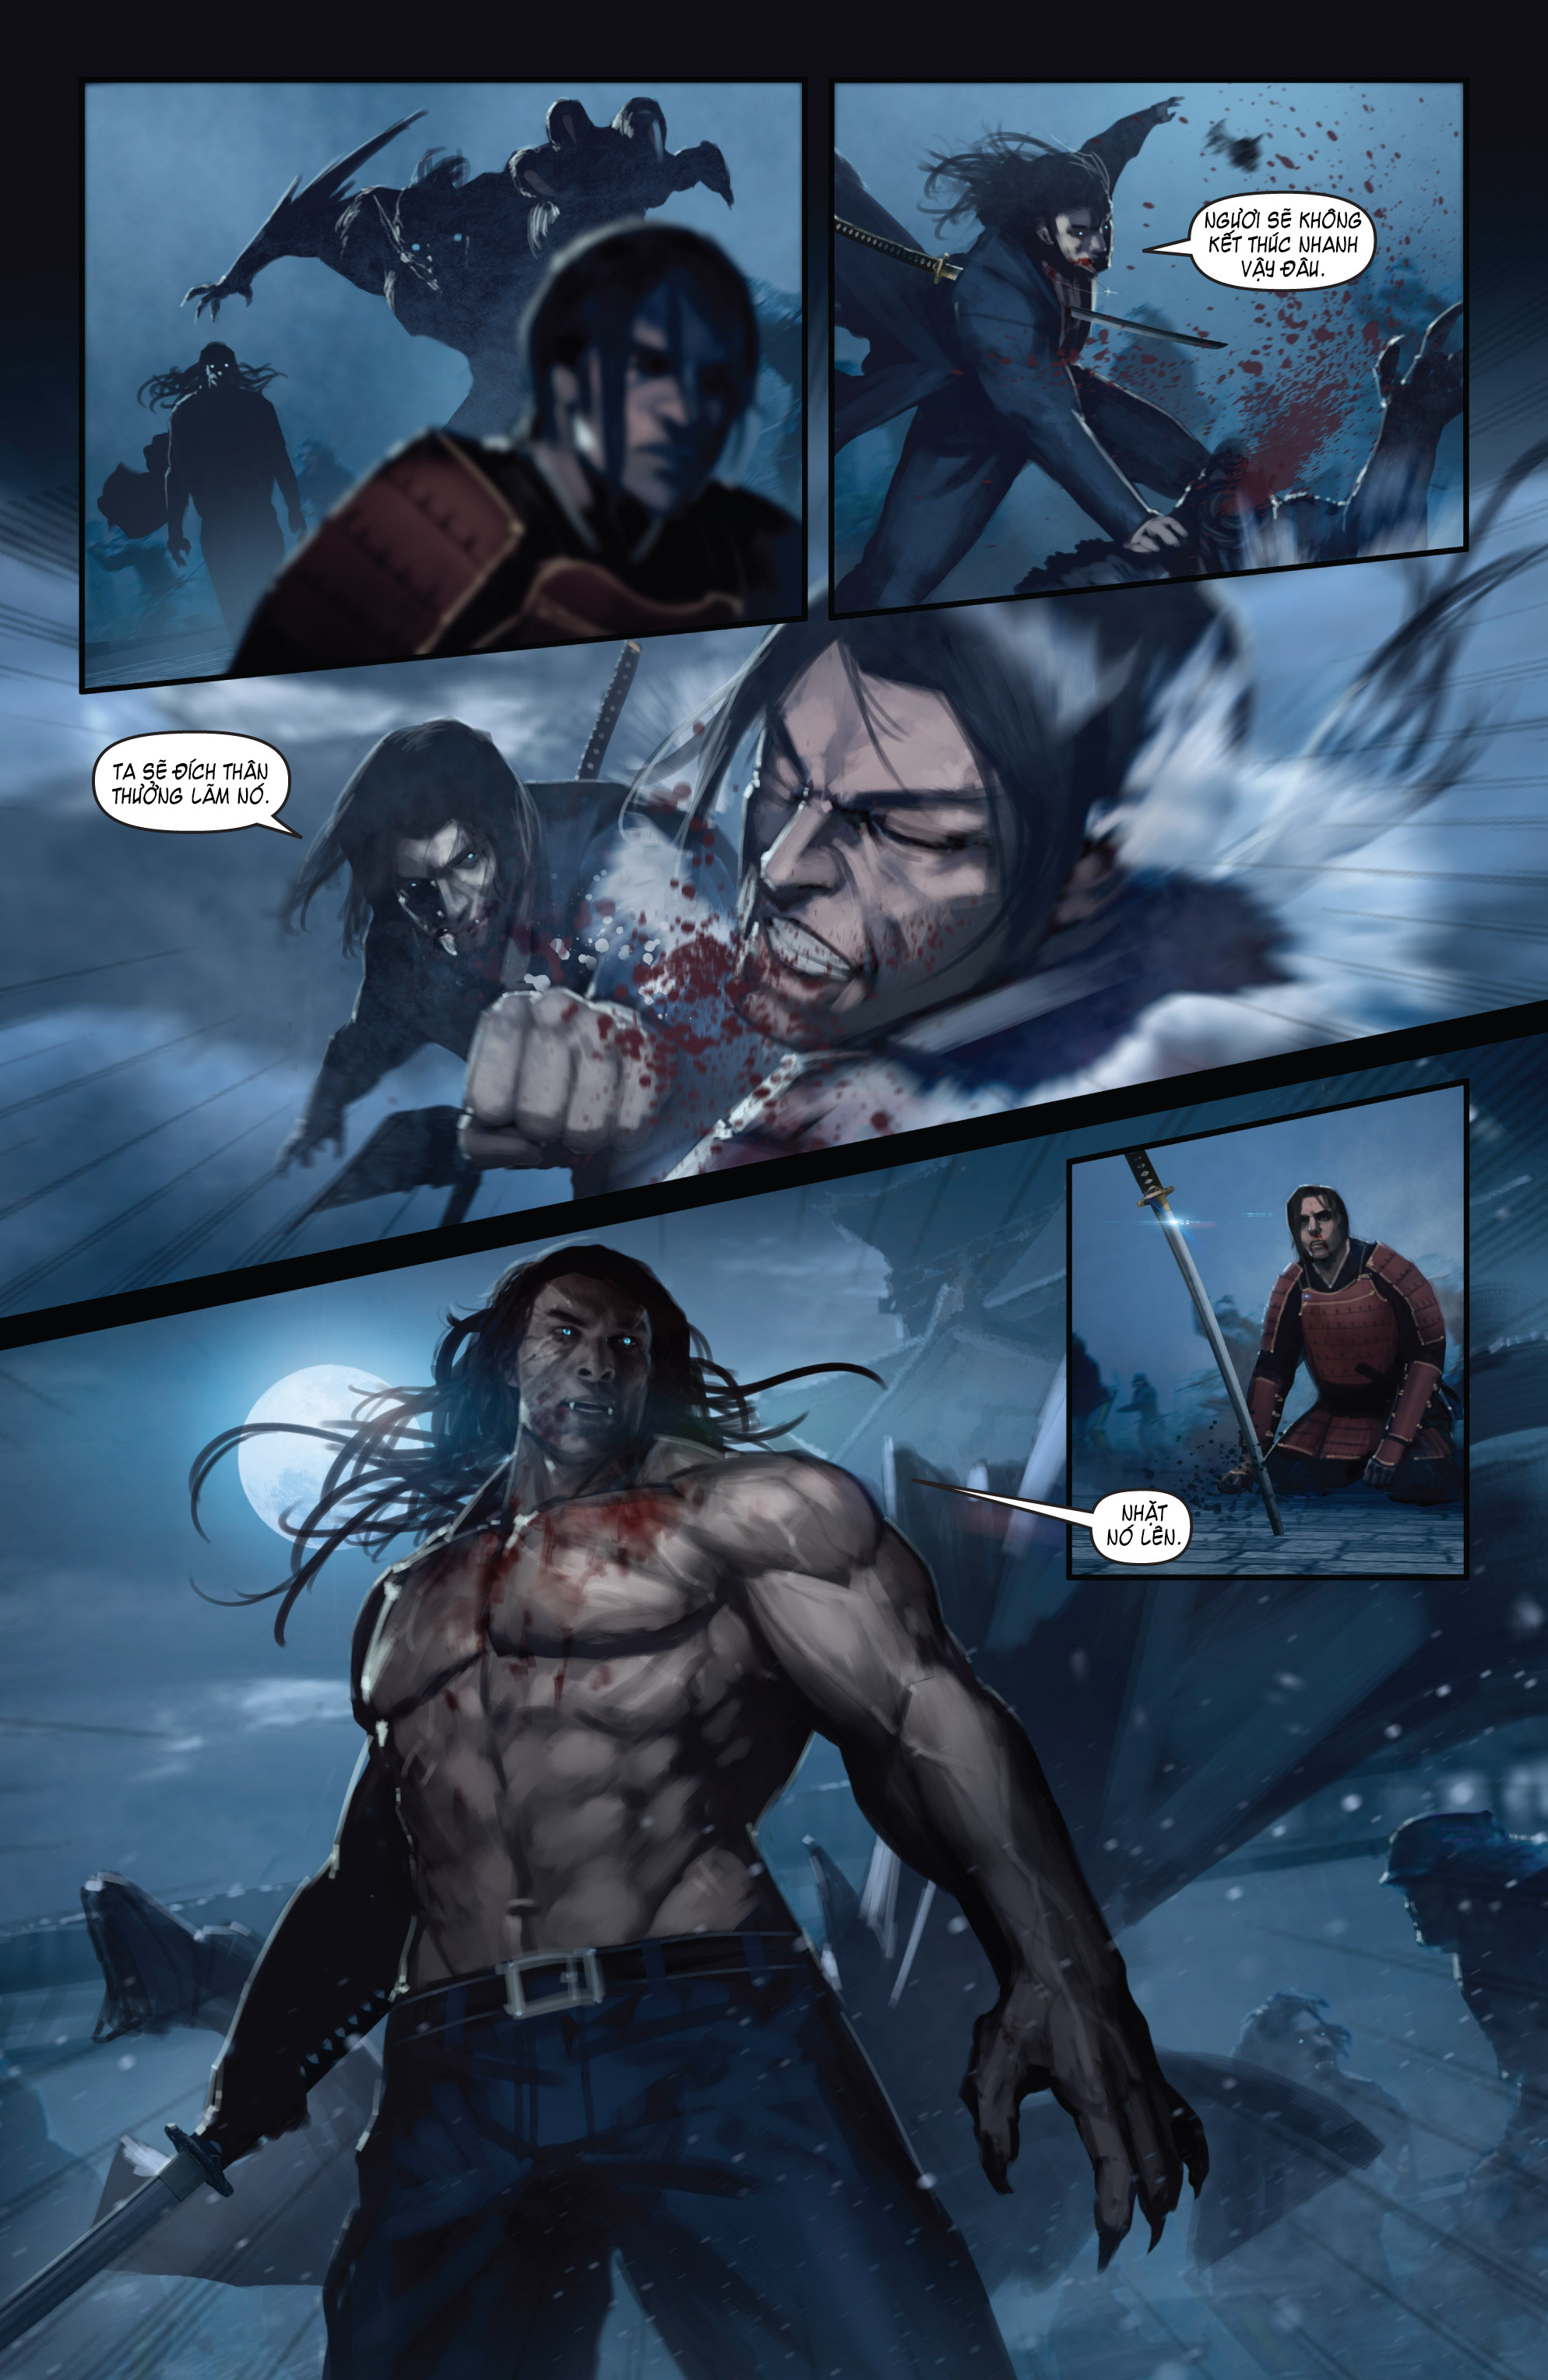 BUSHIDO - THE WAY OF THE WARRIOR chapter 5 - end trang 18